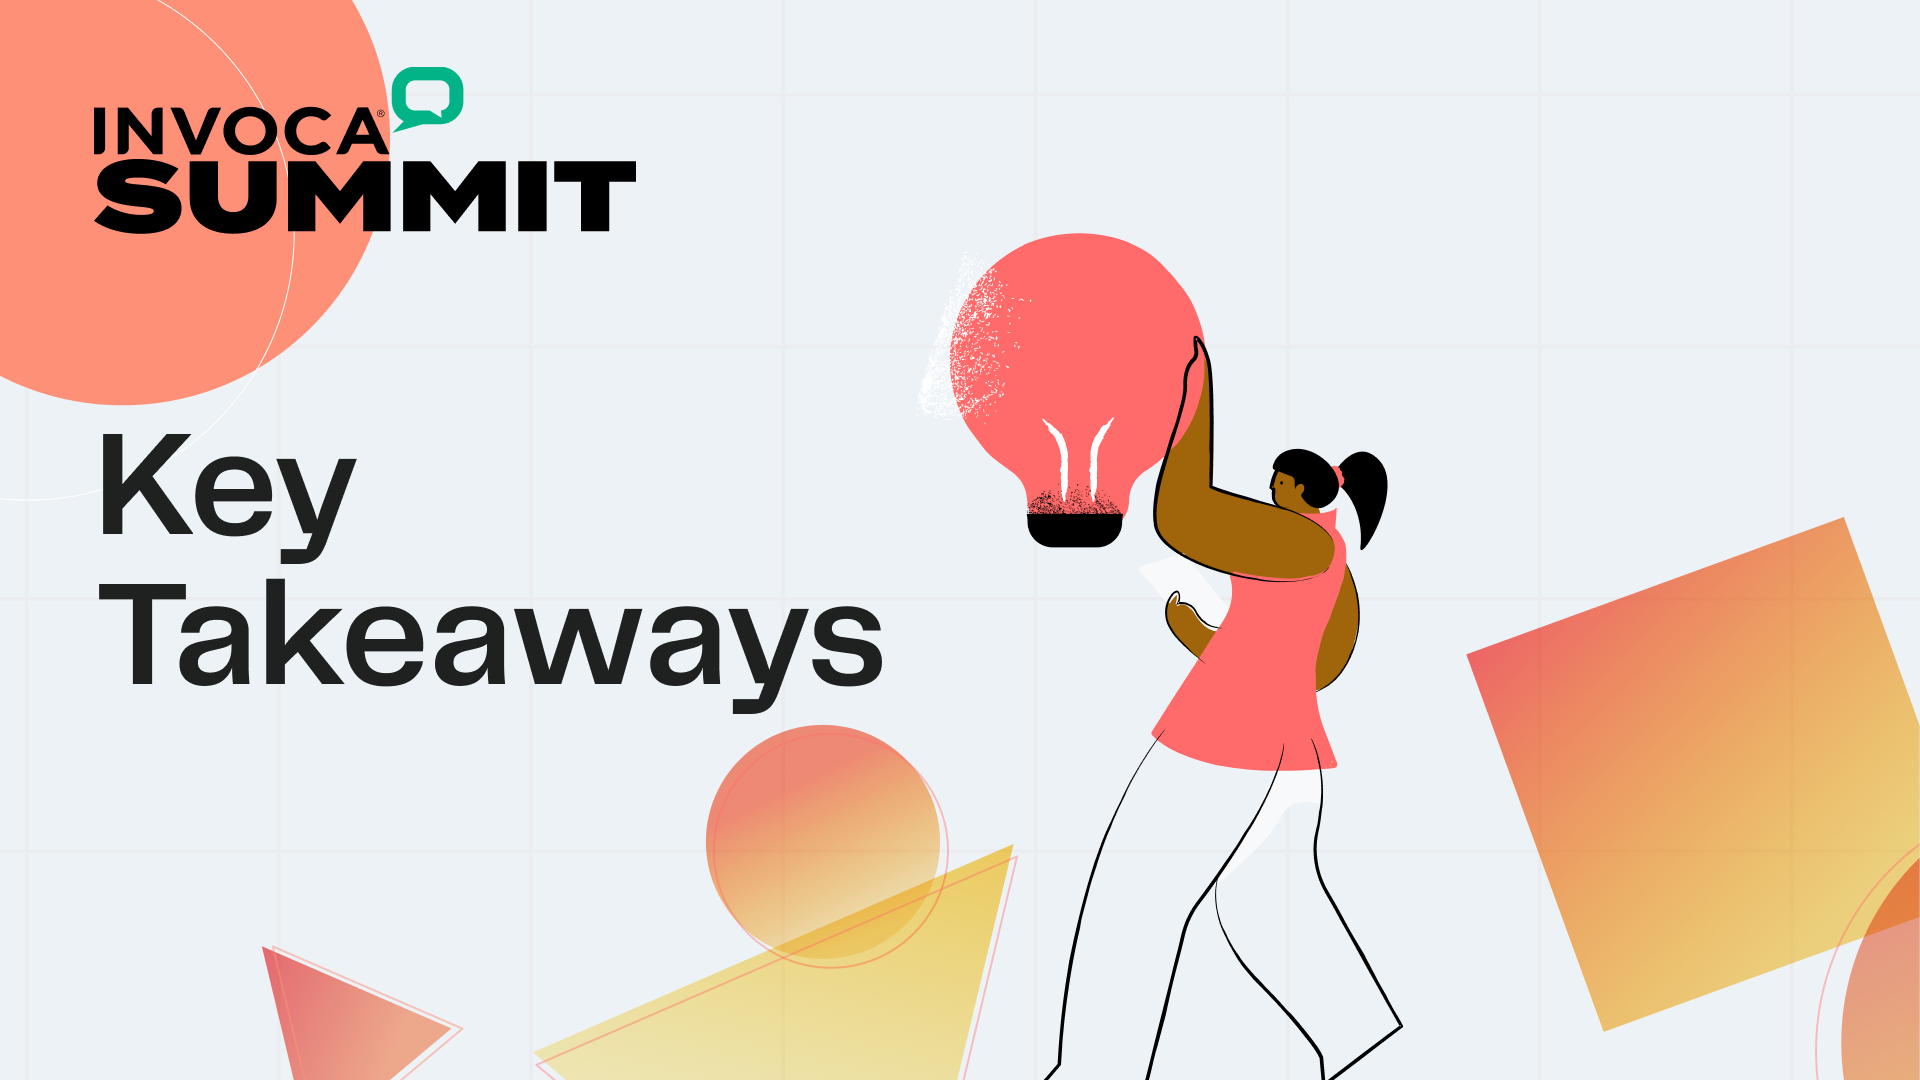 Our Top 5 Takeaways from Invoca Summit 2021